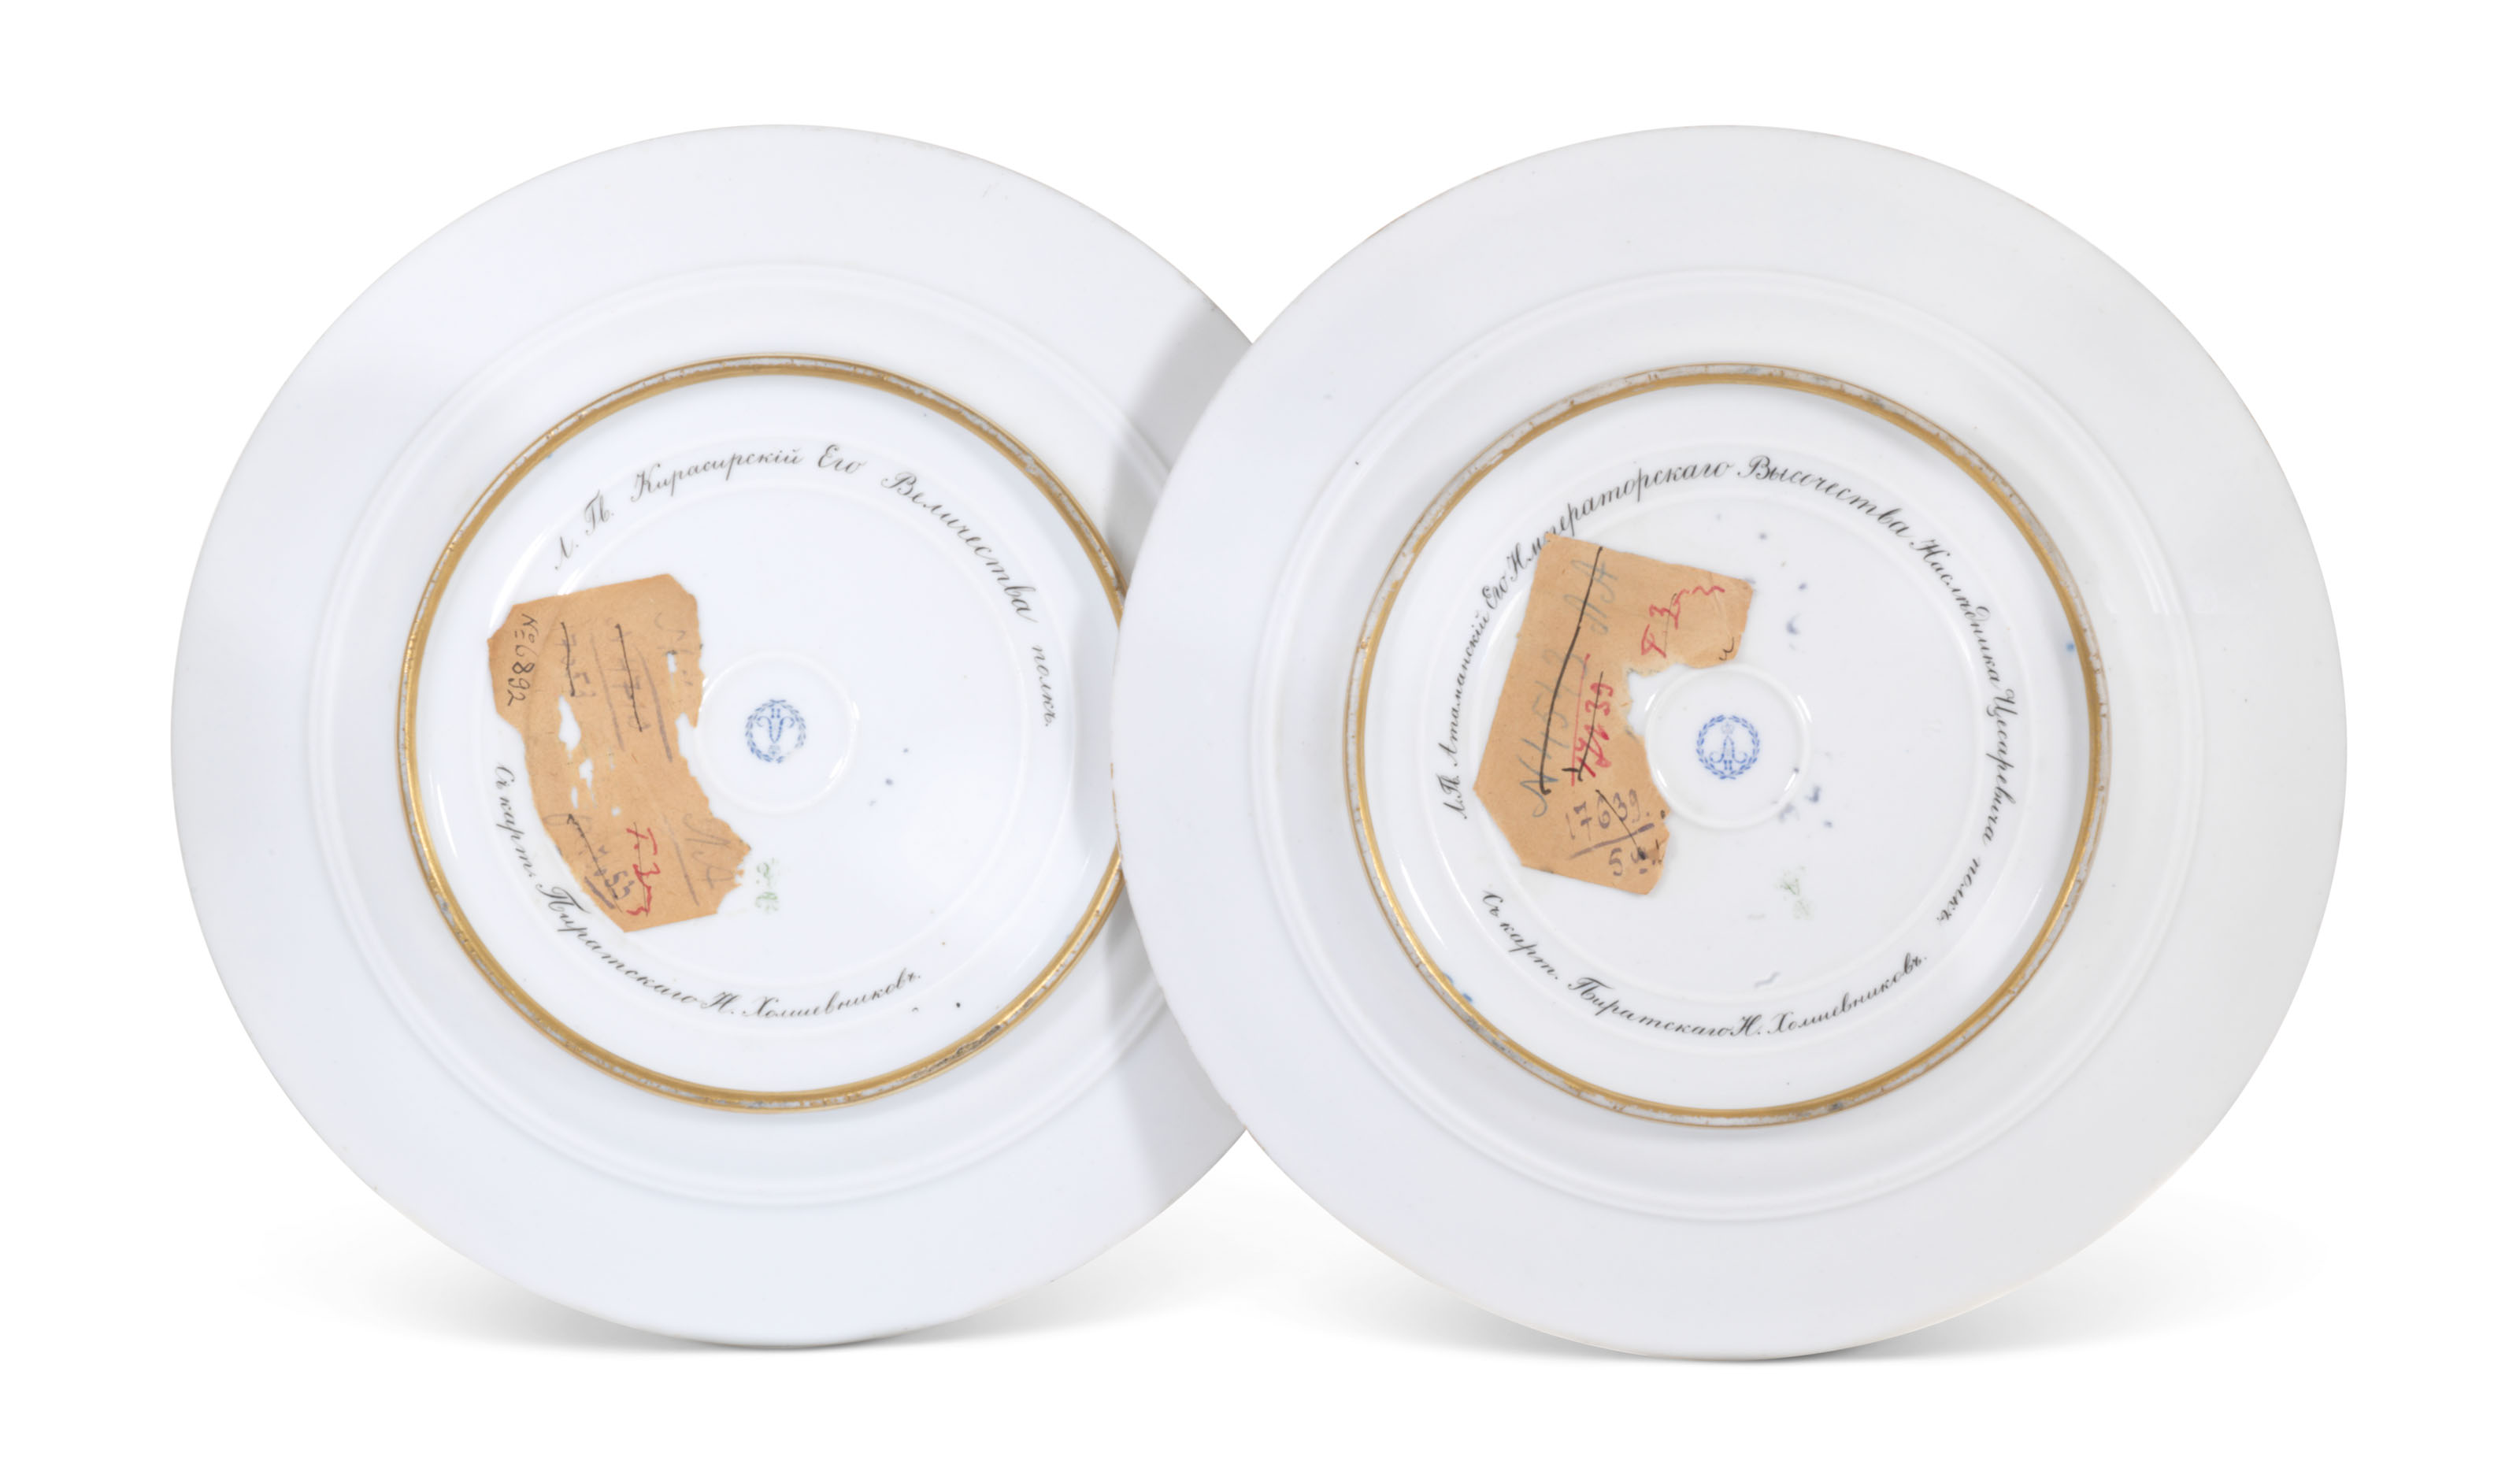 TWO PORCELAIN MILITARY PLATES